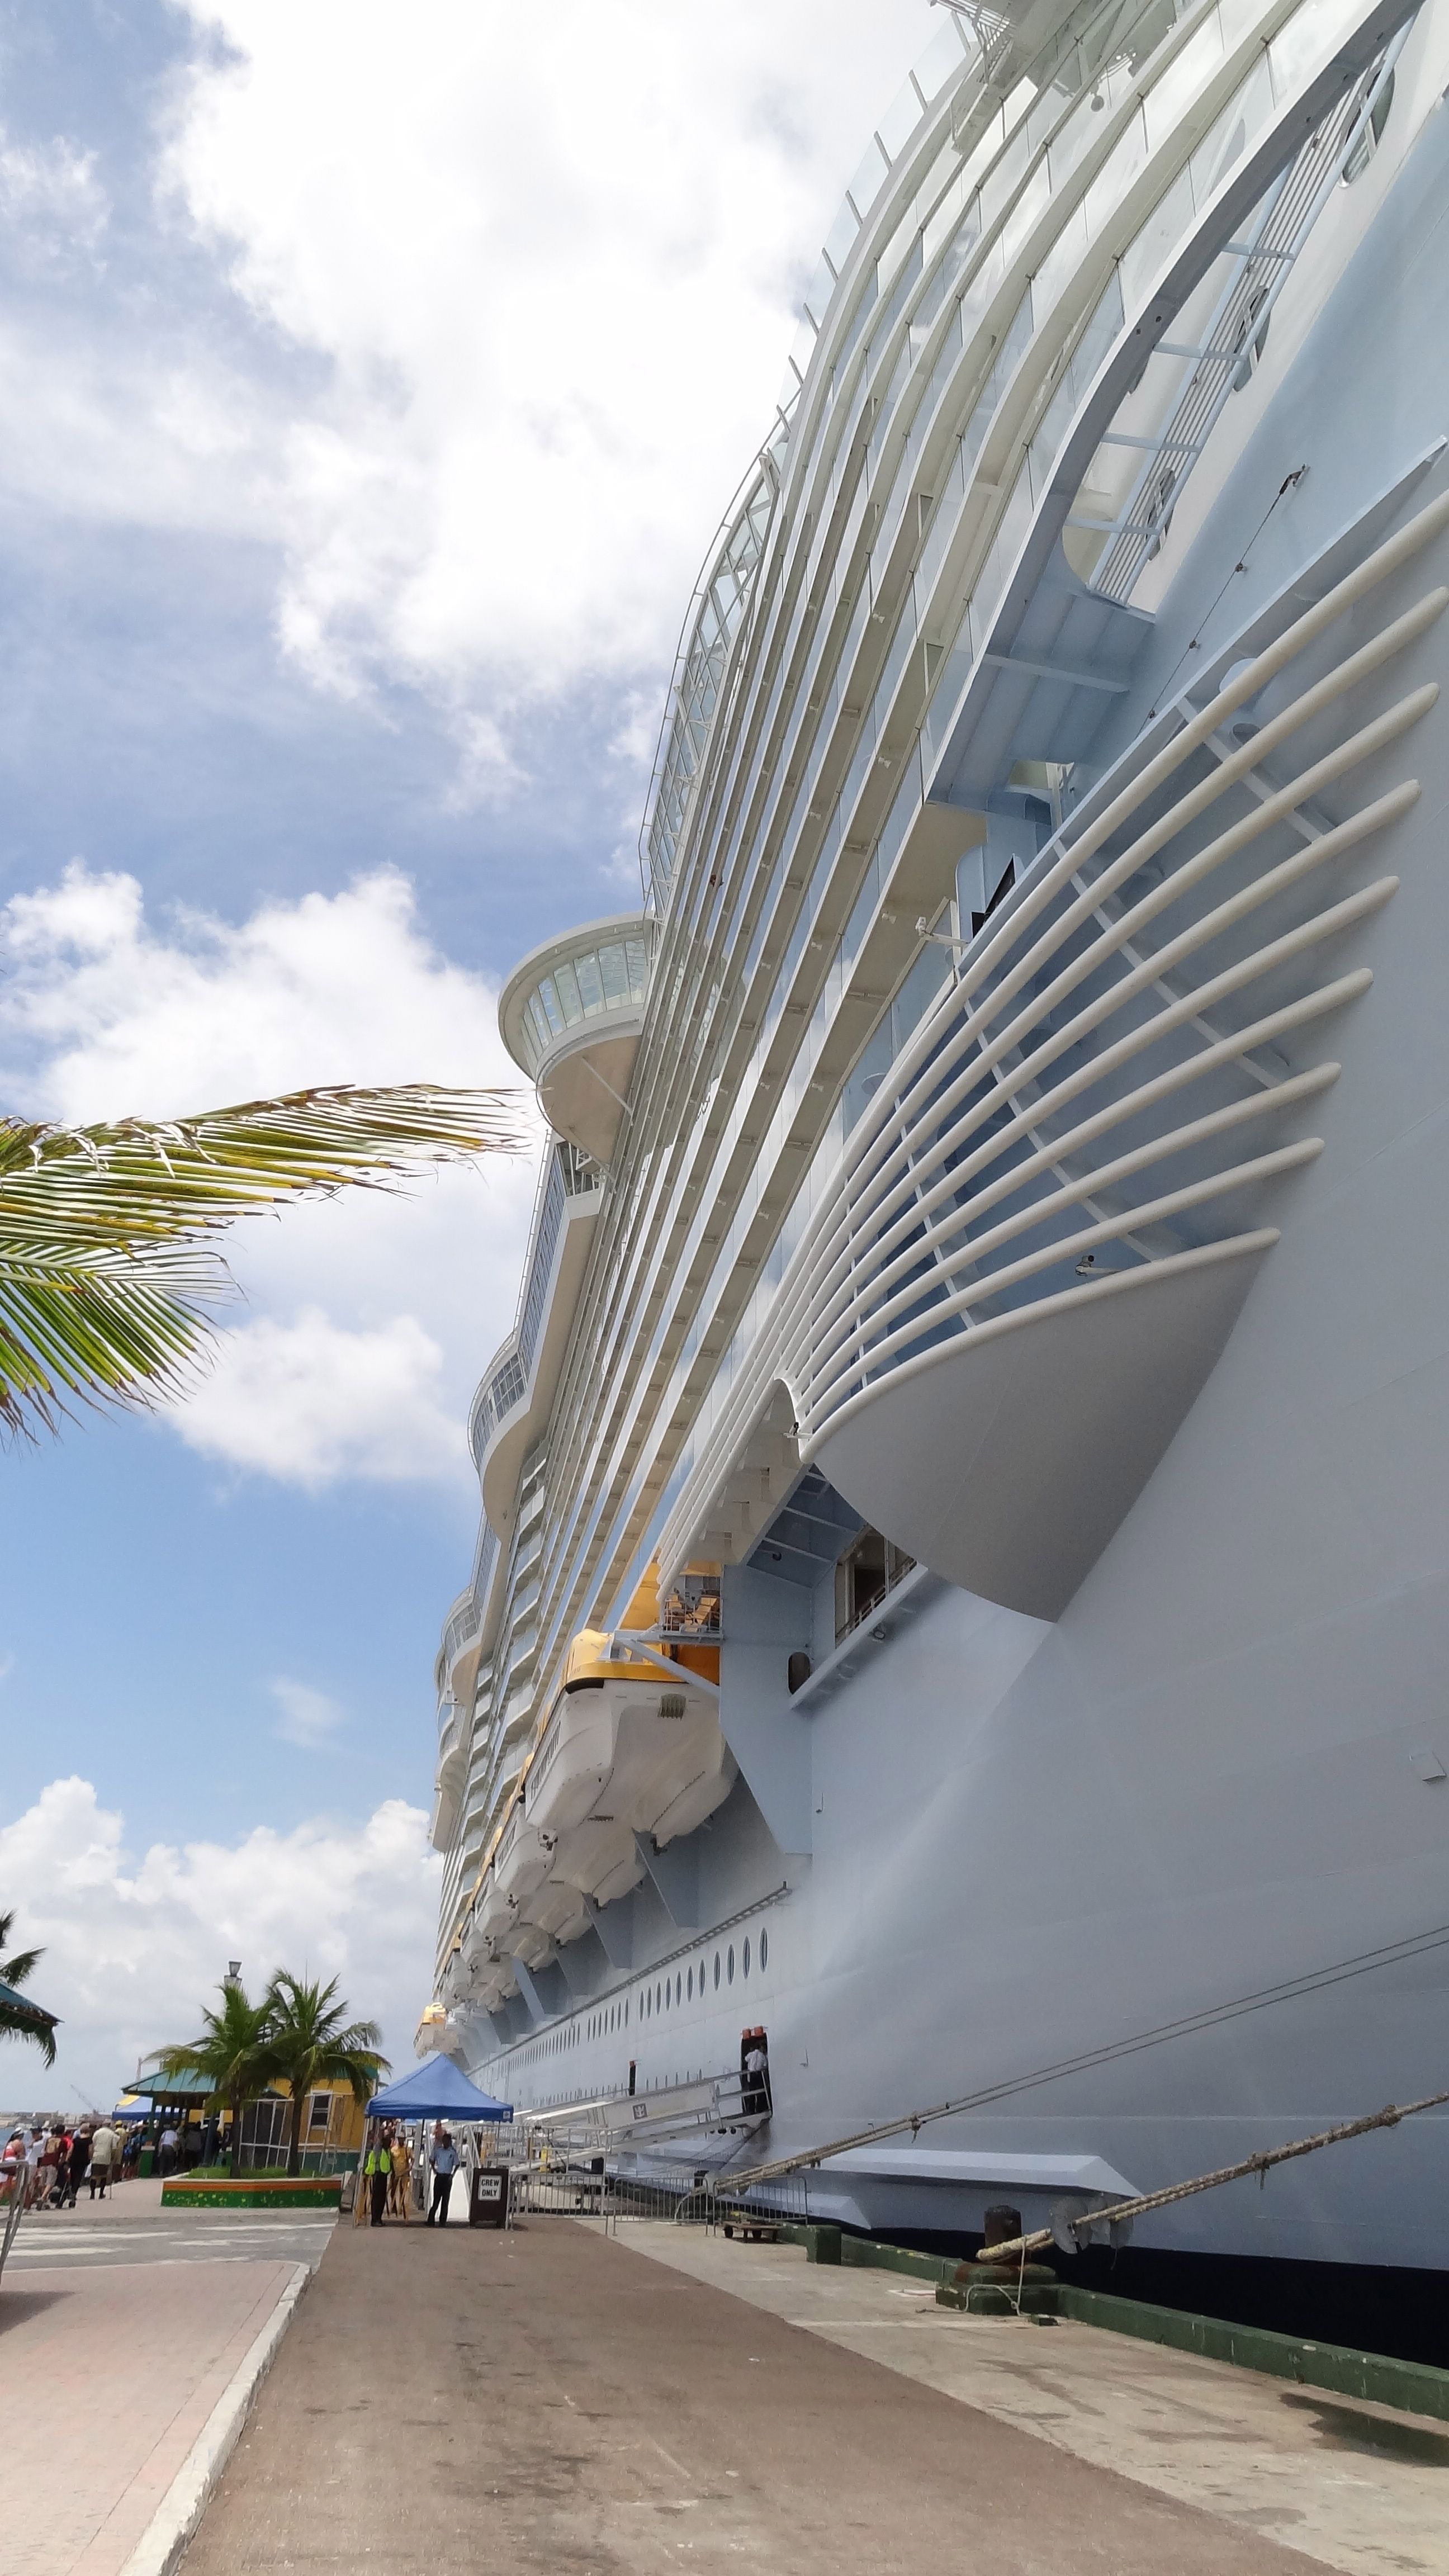 The beauty and size of the Allure of the Seas! | Cruise in